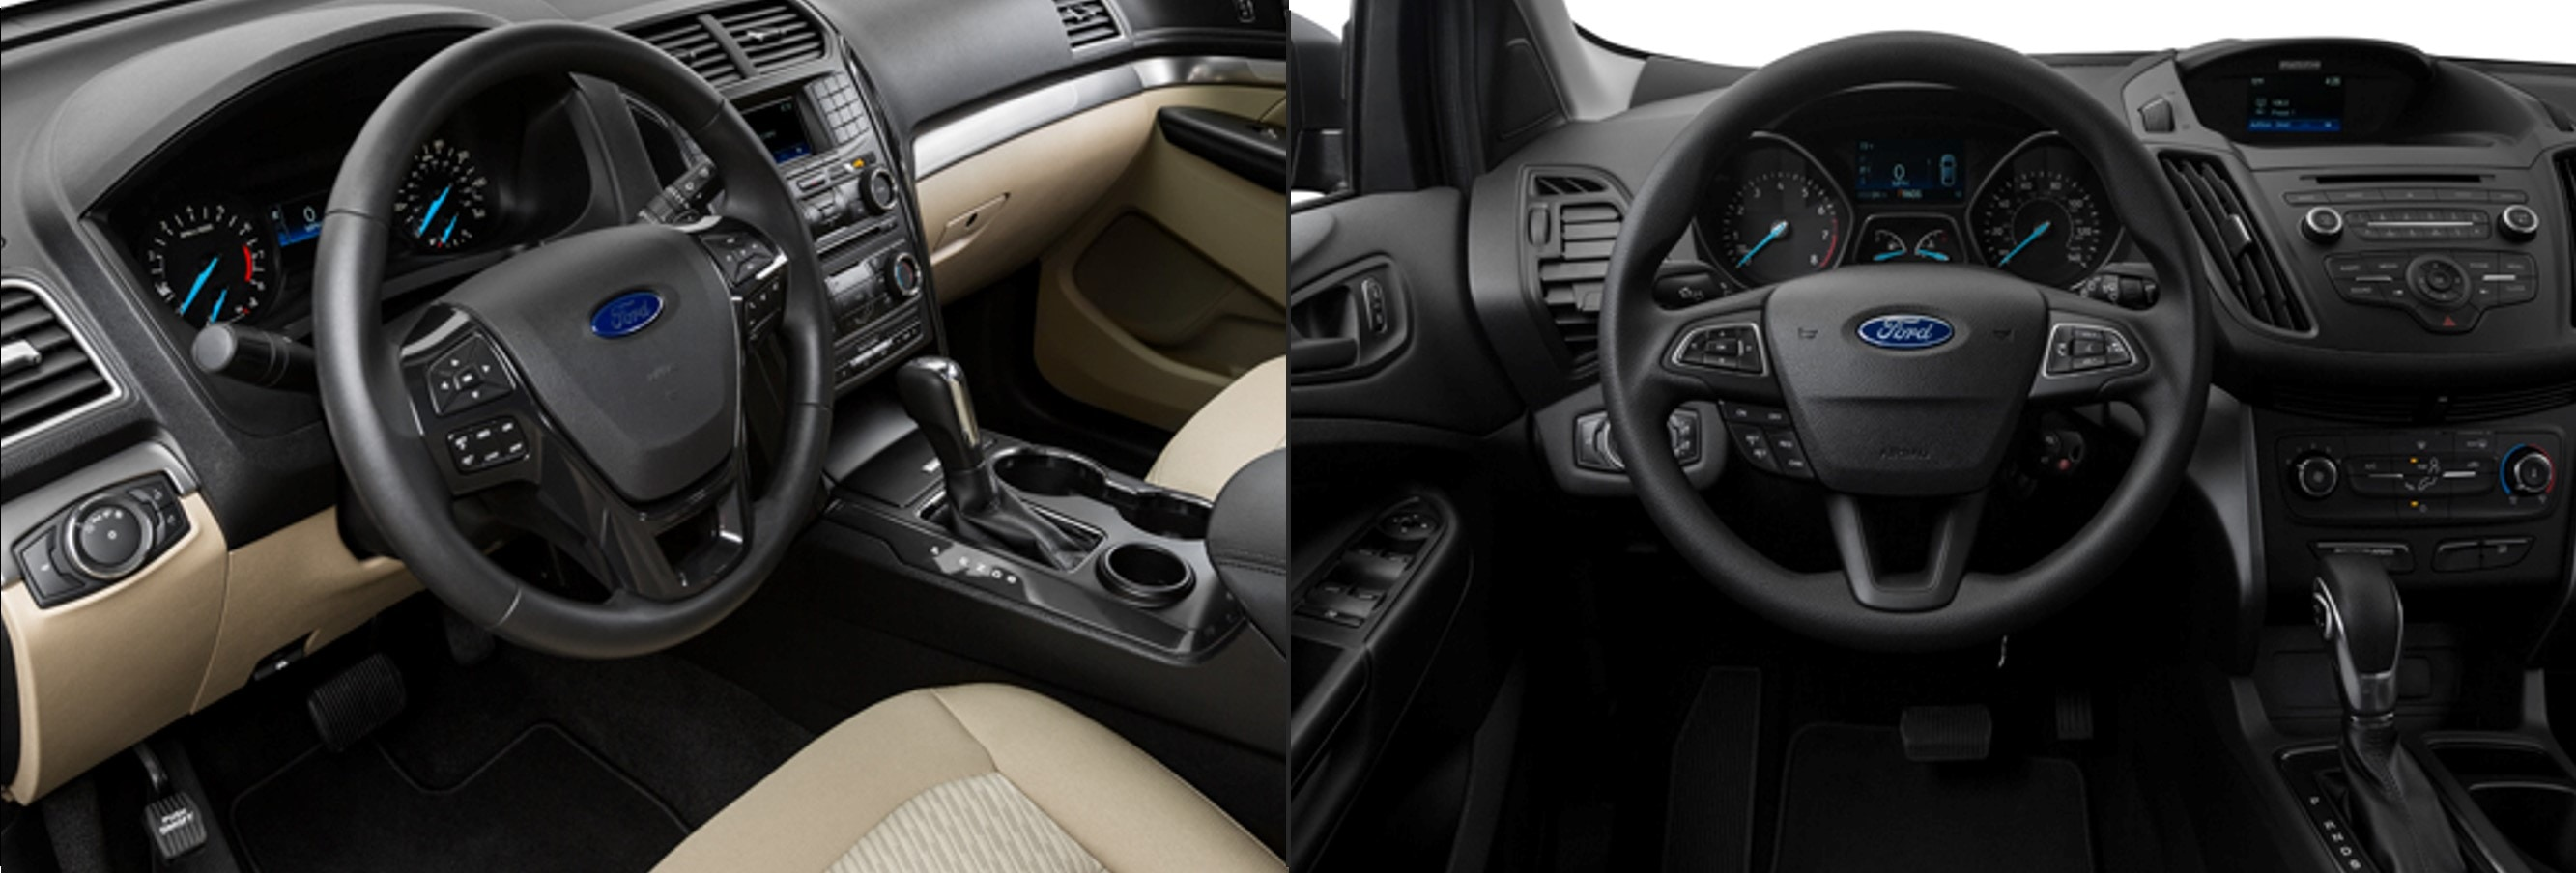 interior dashboard comparison between a 2018 Ford Explorer and an Escape